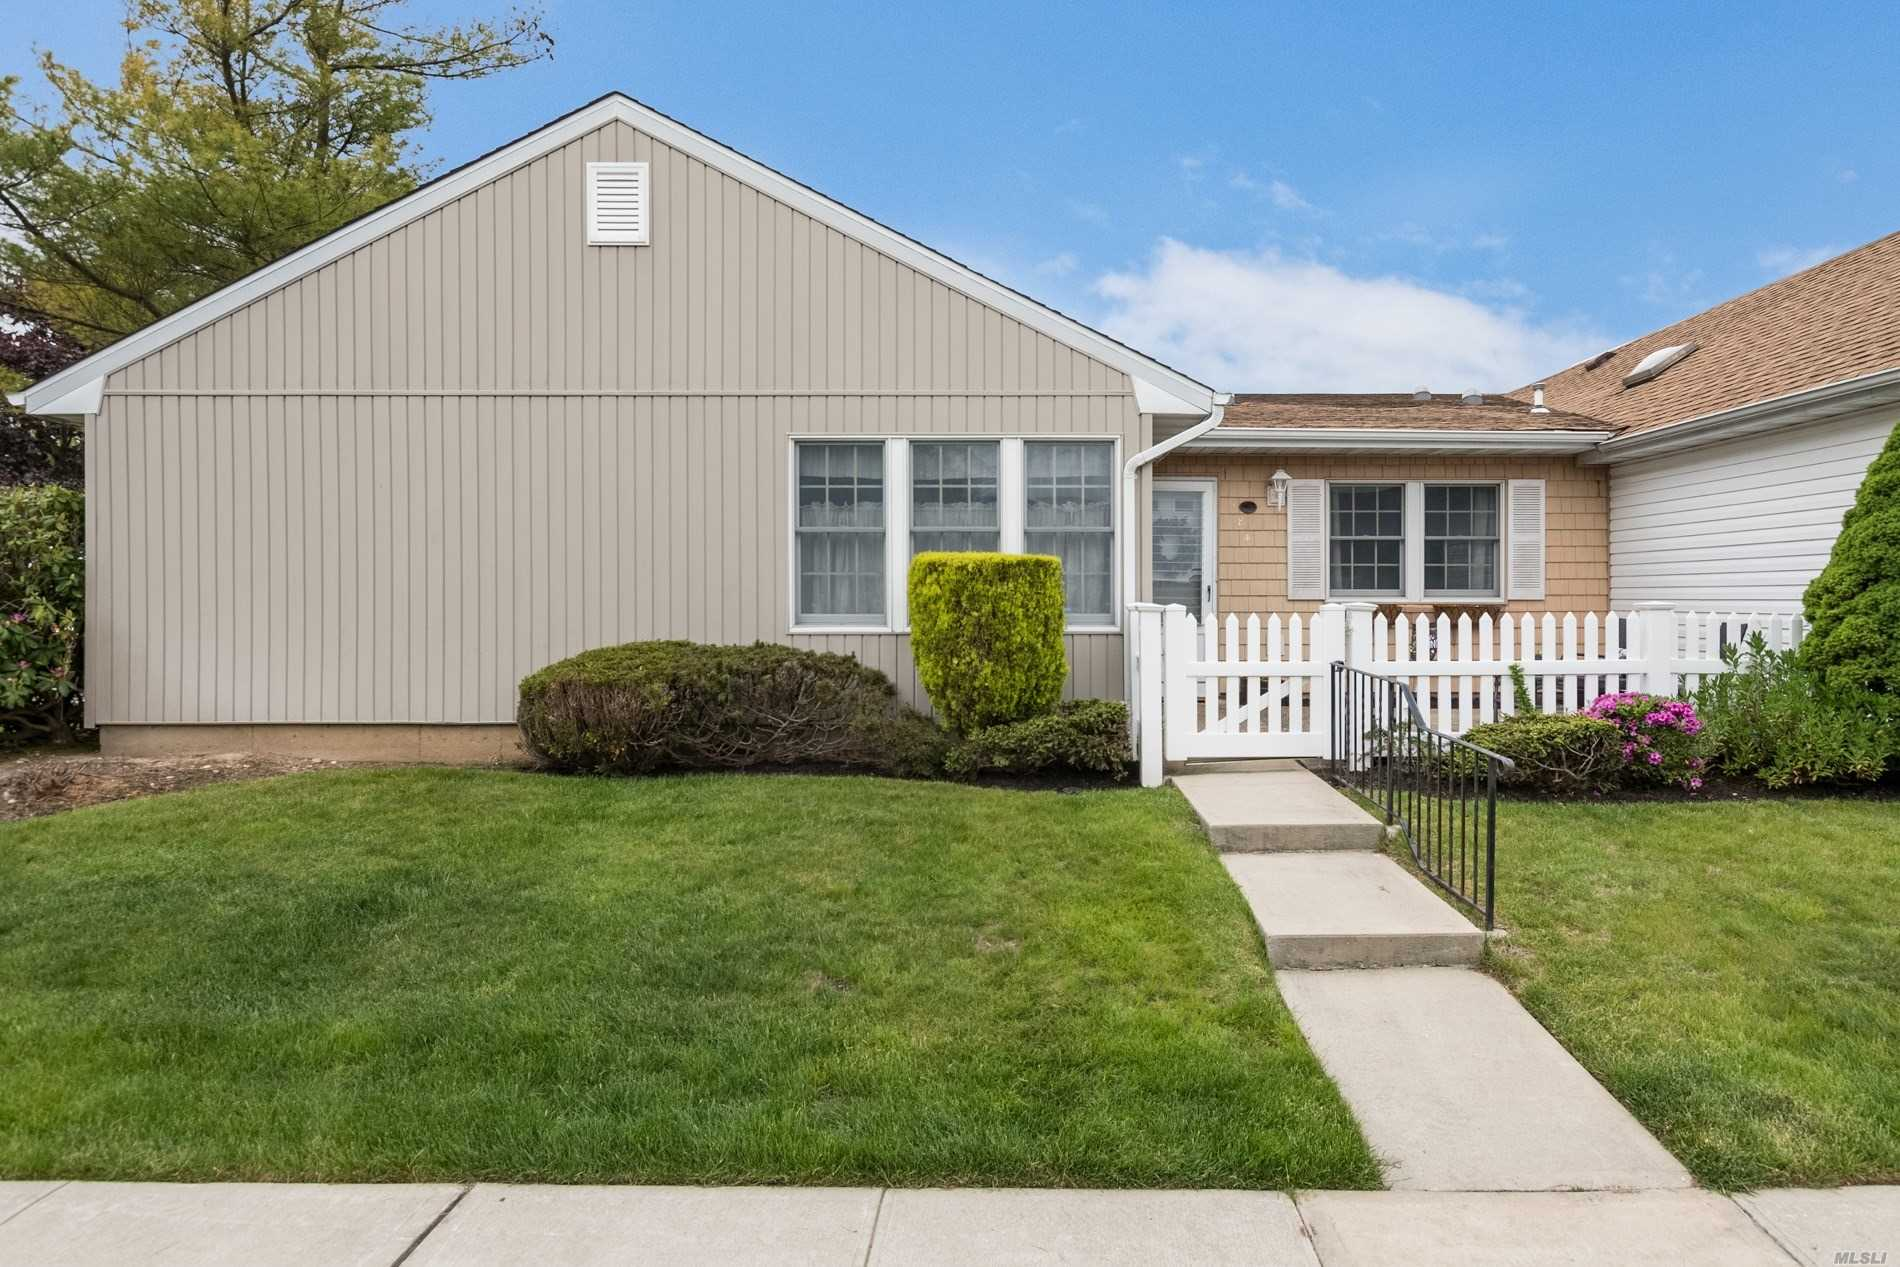 Property for sale at 184 Revere Drive, Sayville NY 11782, Sayville,  New York 11782